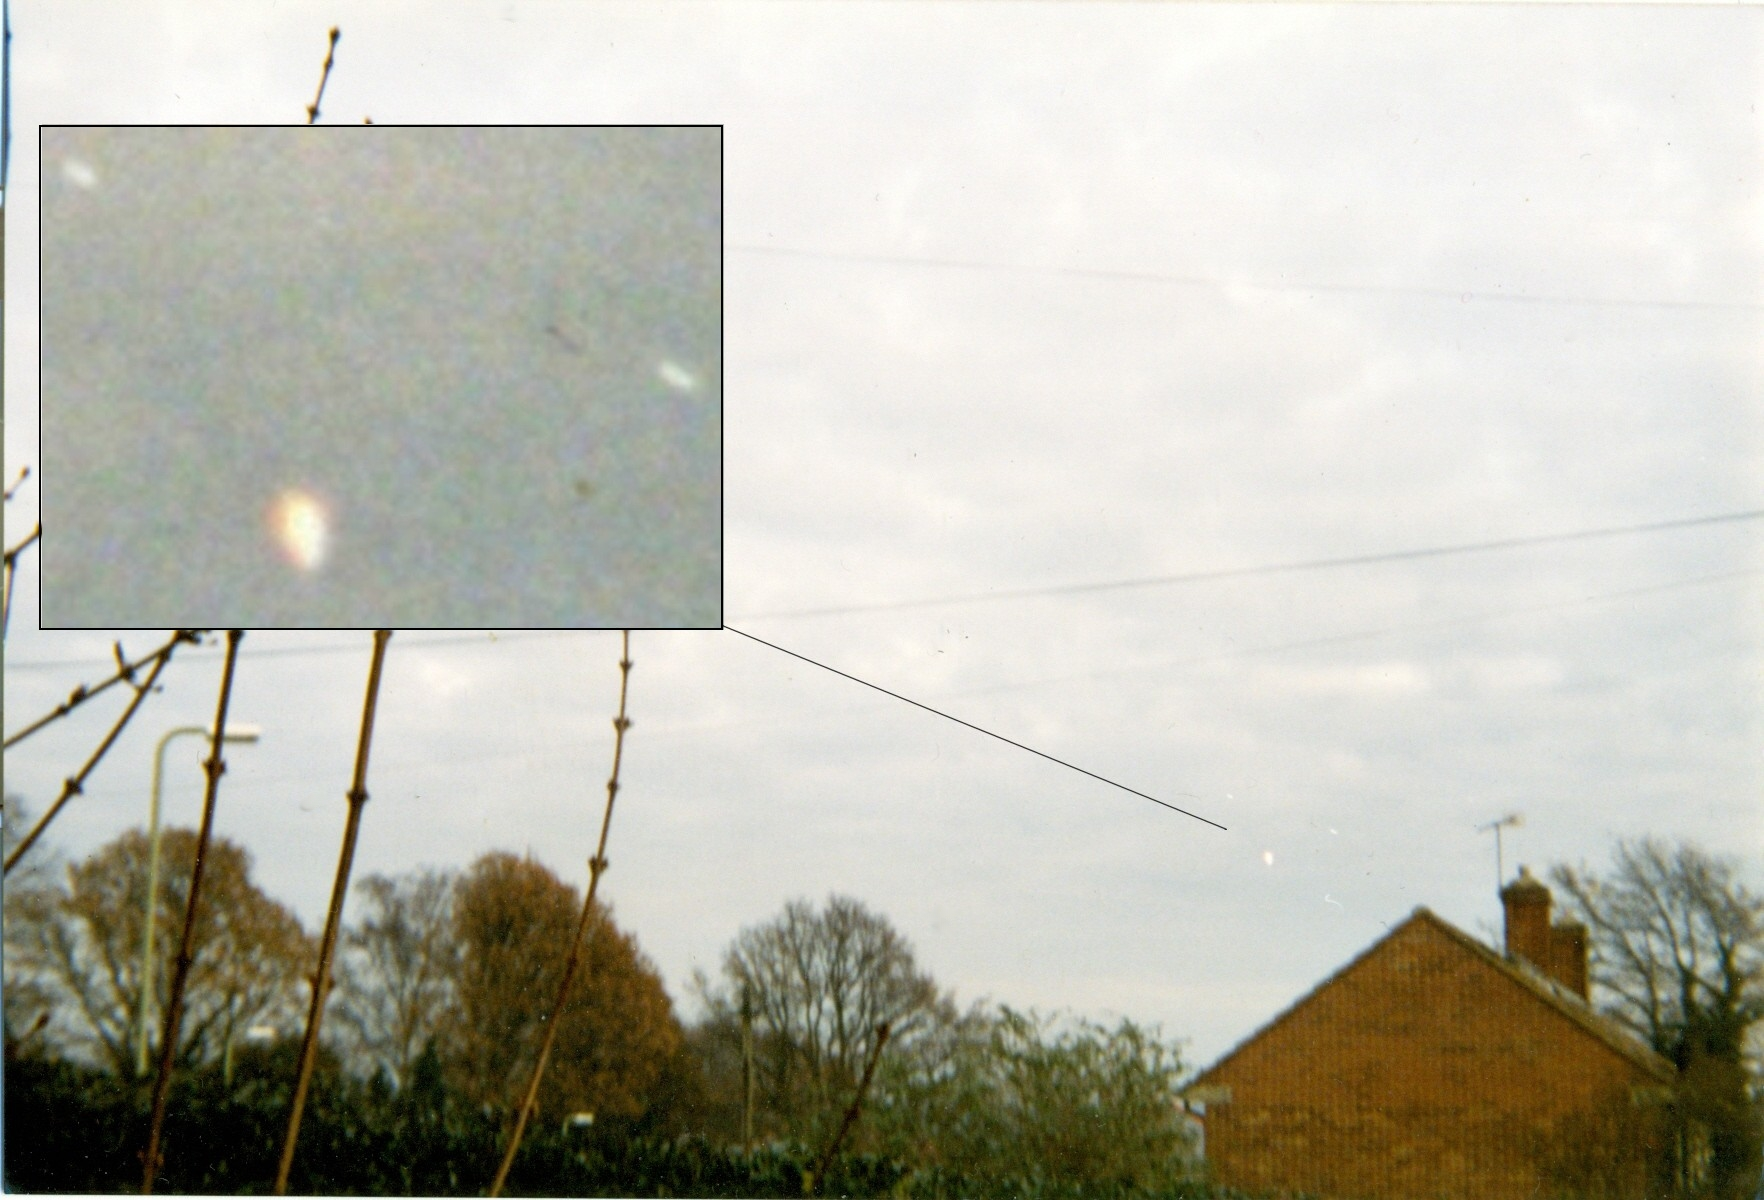 Triangle Formation UFO Photographed - Farnborough, Hants - Late 1990's